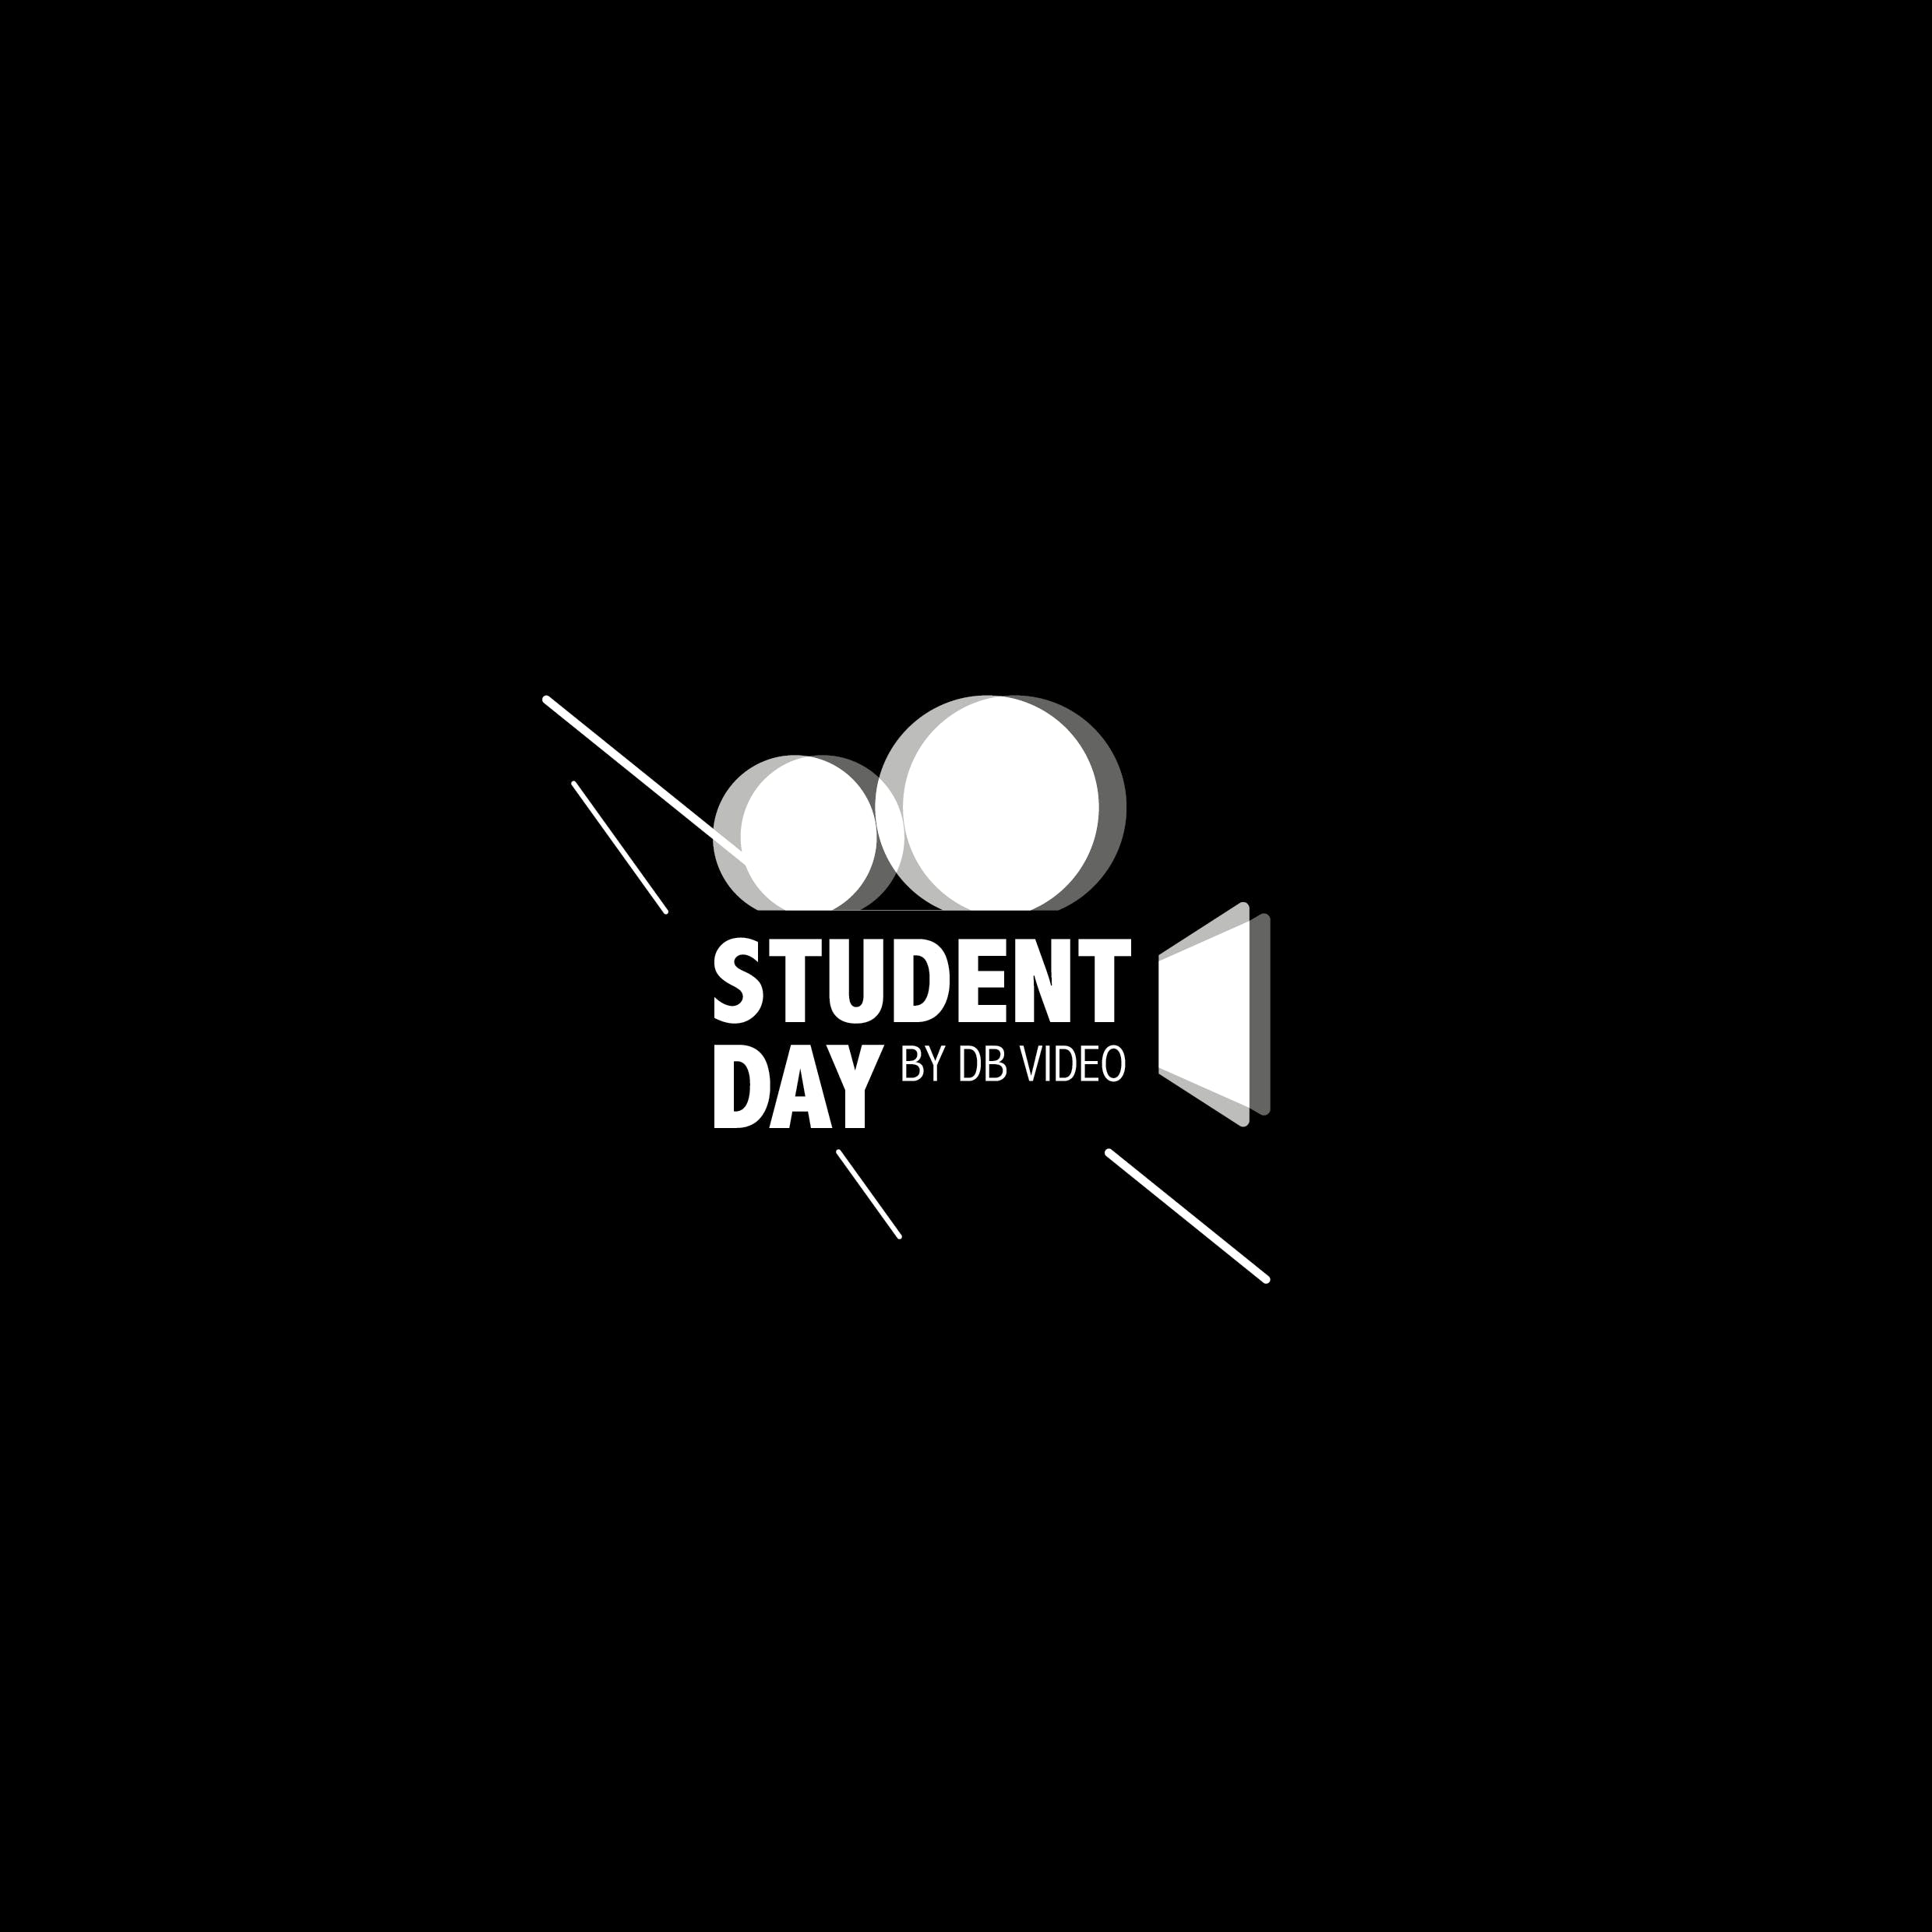 STUDENT DAY 2018